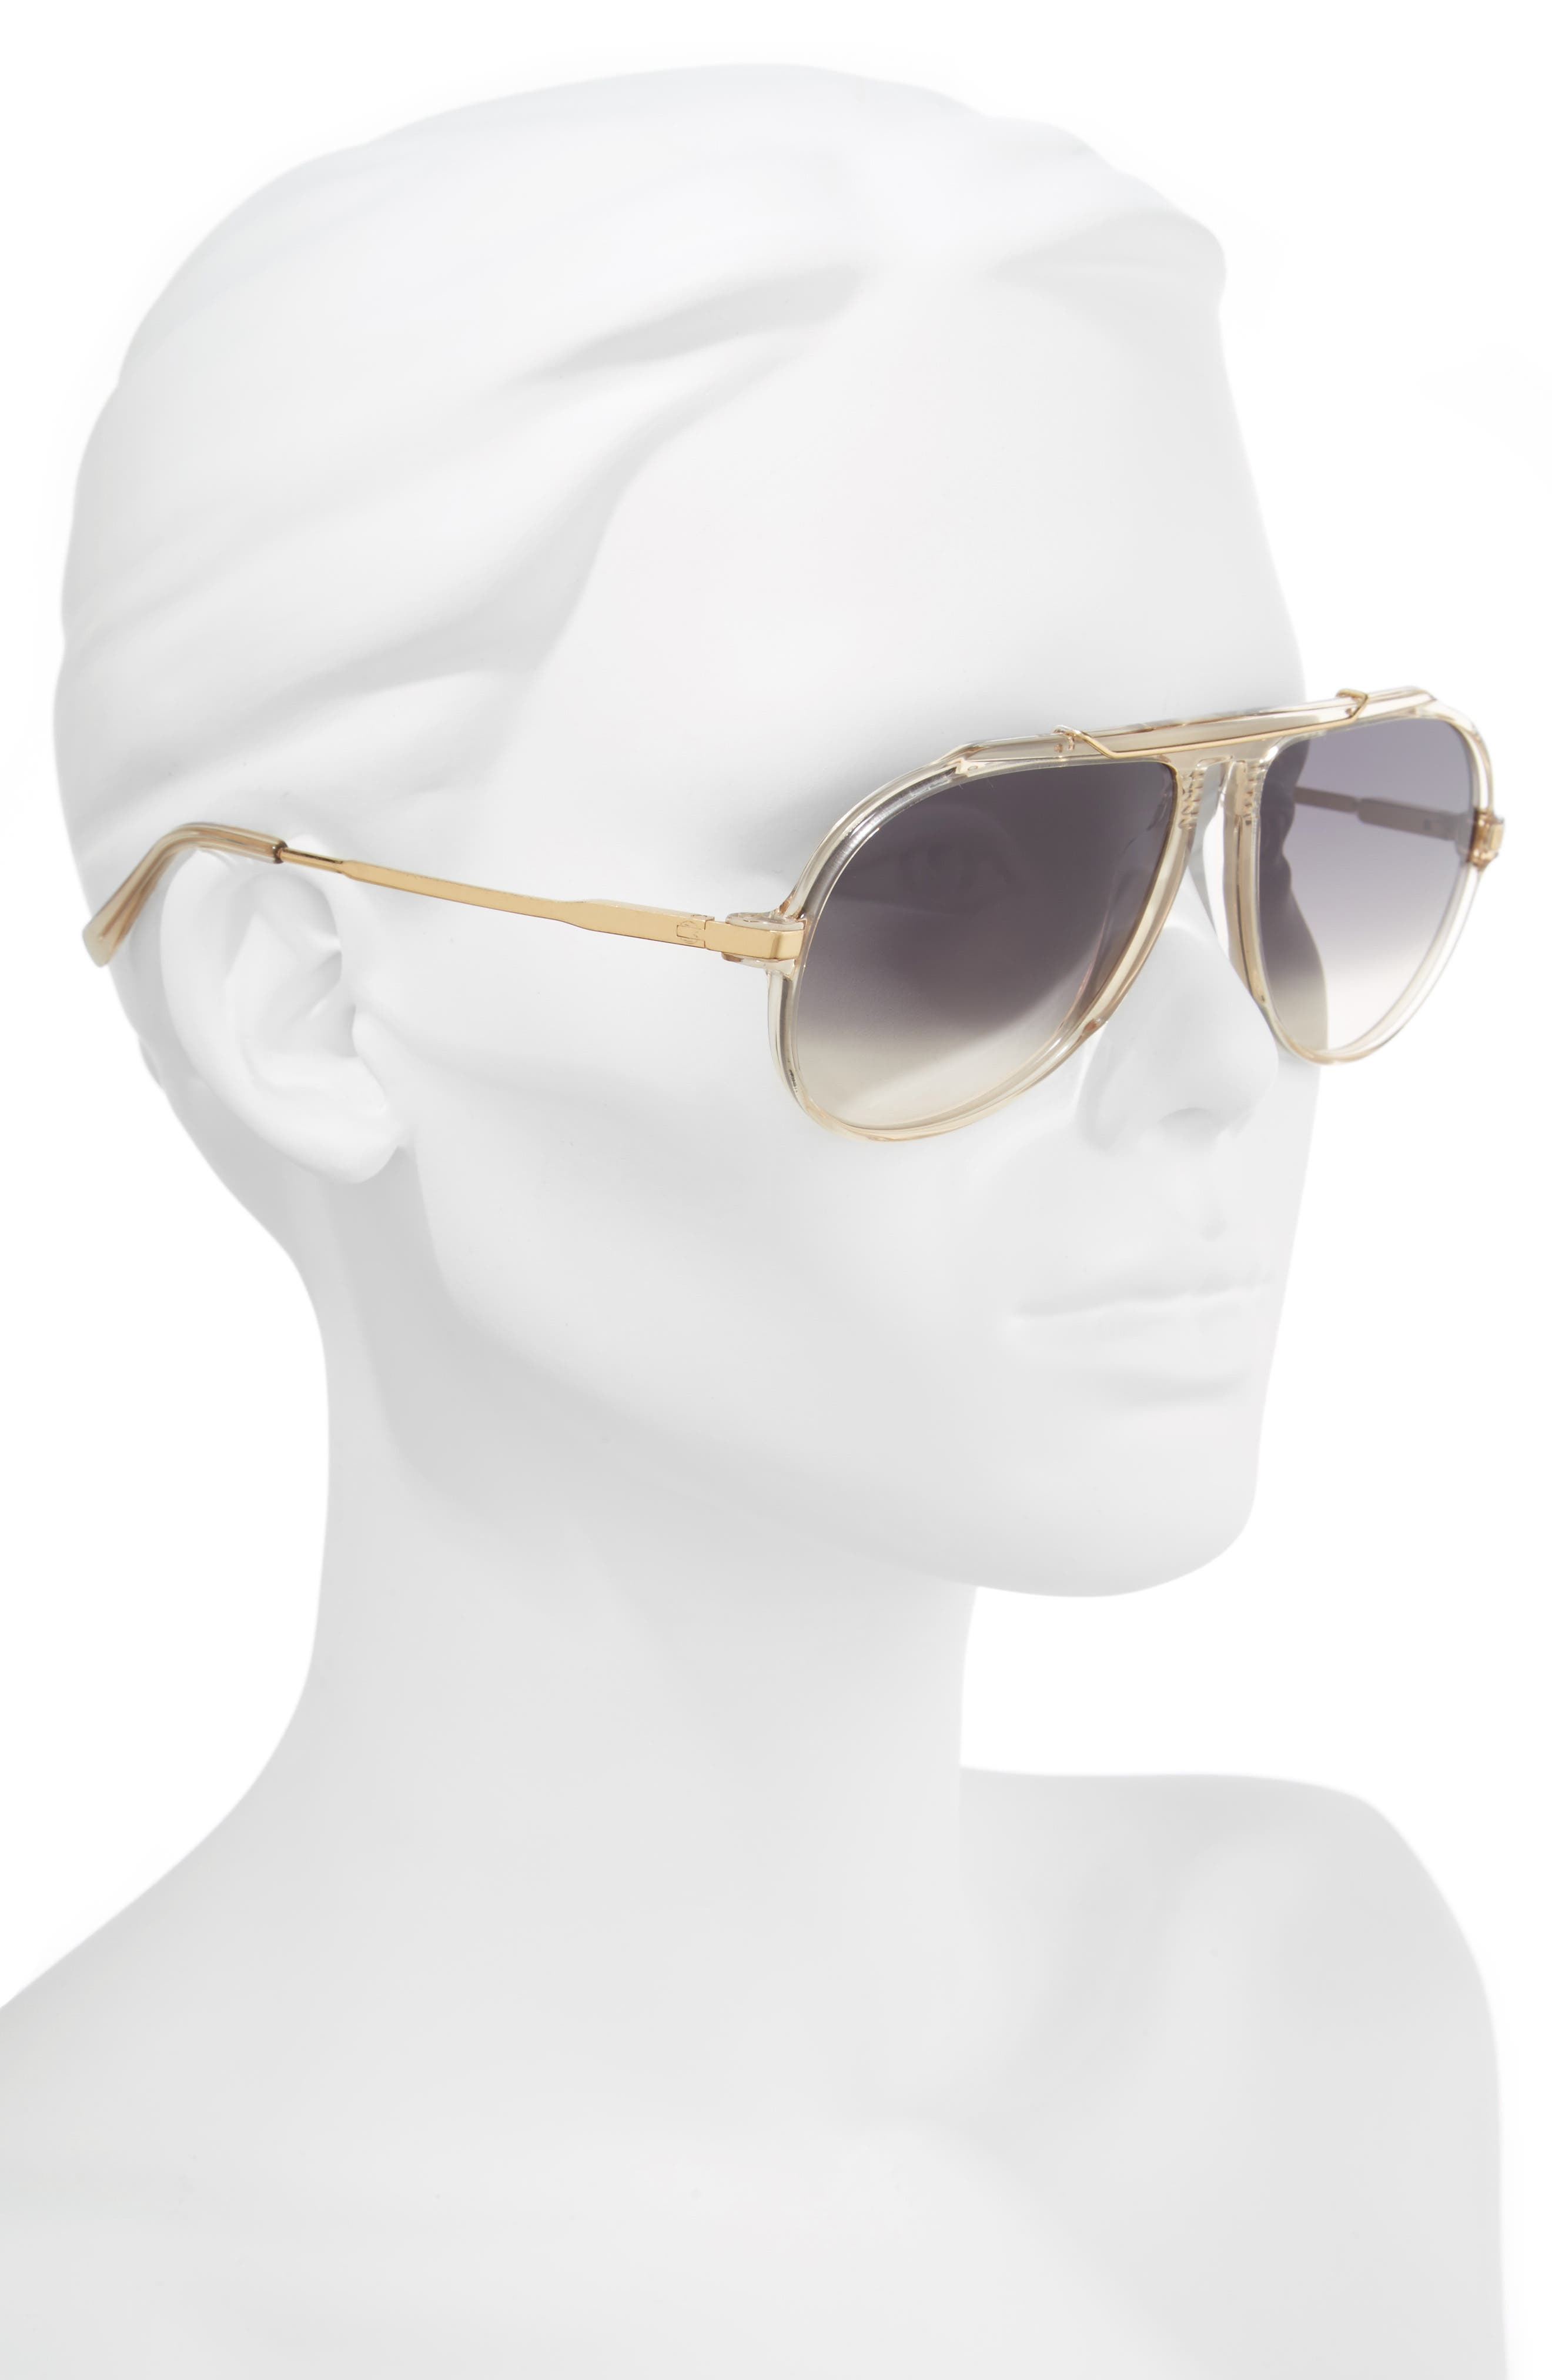 60mm Gradient Aviator Sunglasses,                             Alternate thumbnail 2, color,                             Champagne/ Gold/ Green